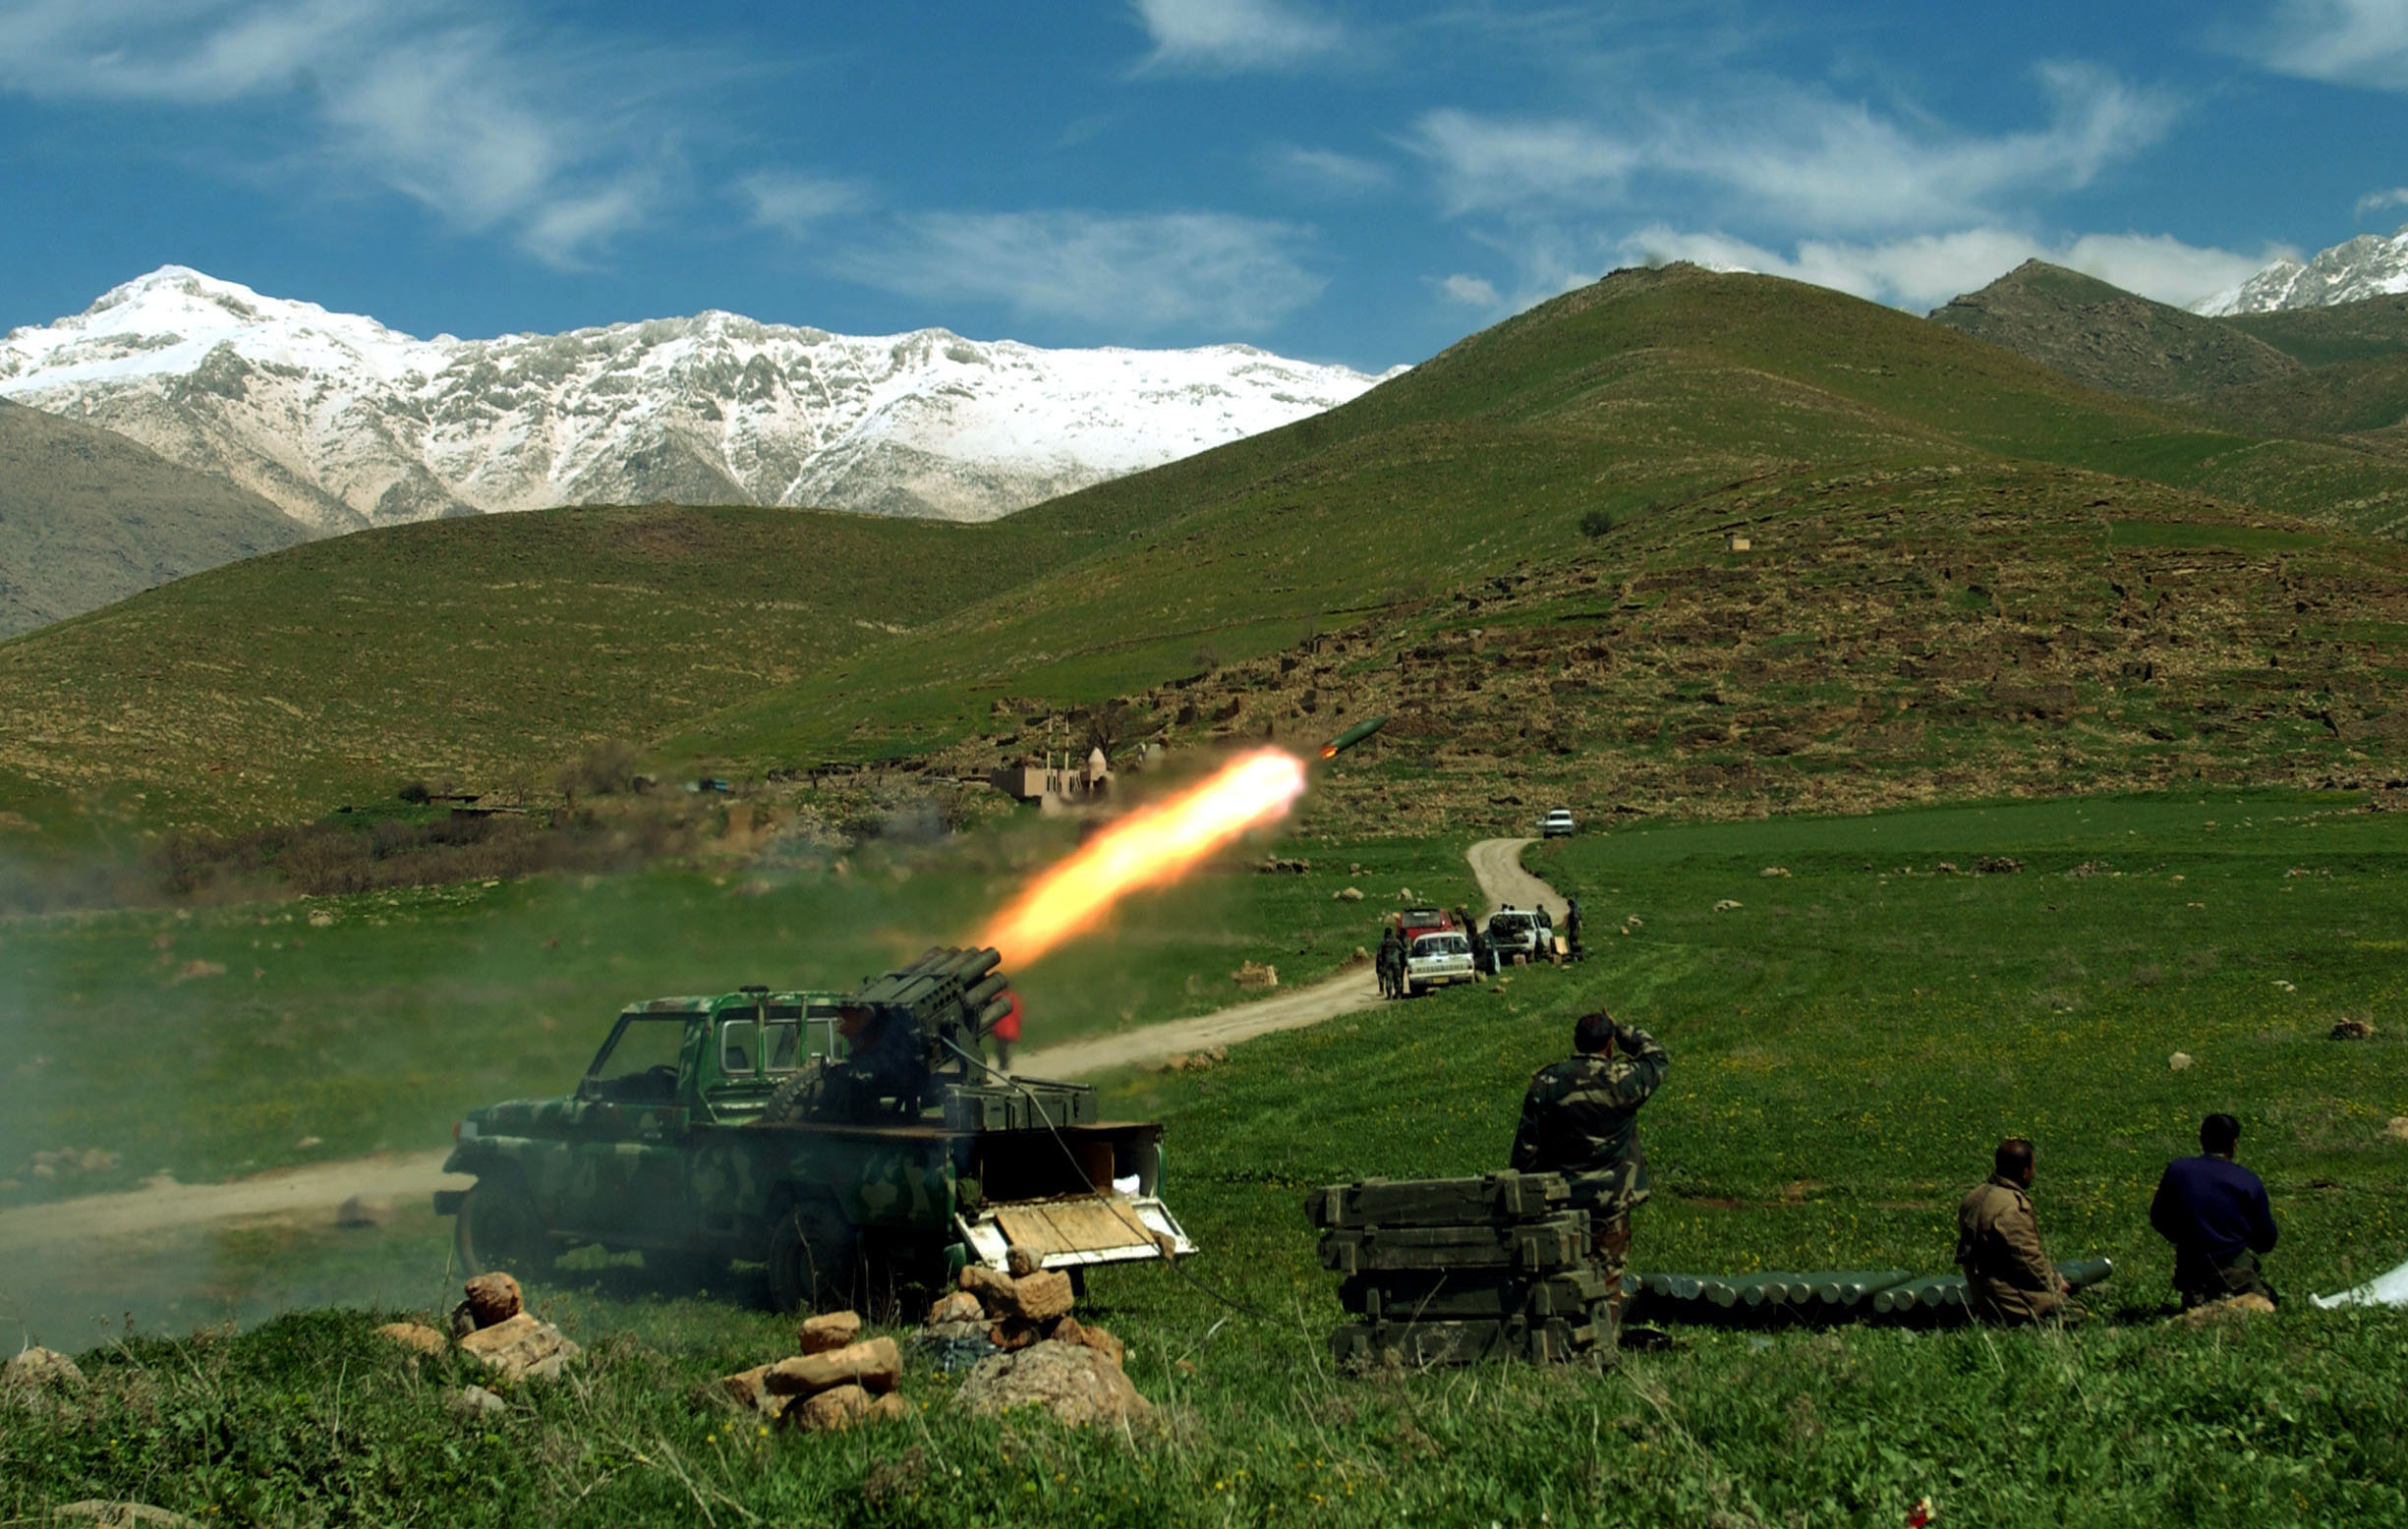 Kurdish Peshmerga fire rockets at Ansar territory whileduring a US-lead war in coalition with Kurdish fighters against the fundamentalist group qwith alleged ties to Al Quaeda near Halabja,  Northern Iraq, March 30, 2003.  The United States is leading a war on several fronts throughout Iraq and Northern Iraq both in the name of the War on Terrorism and to overthrow Iraqi ruler Saddam Hussain.